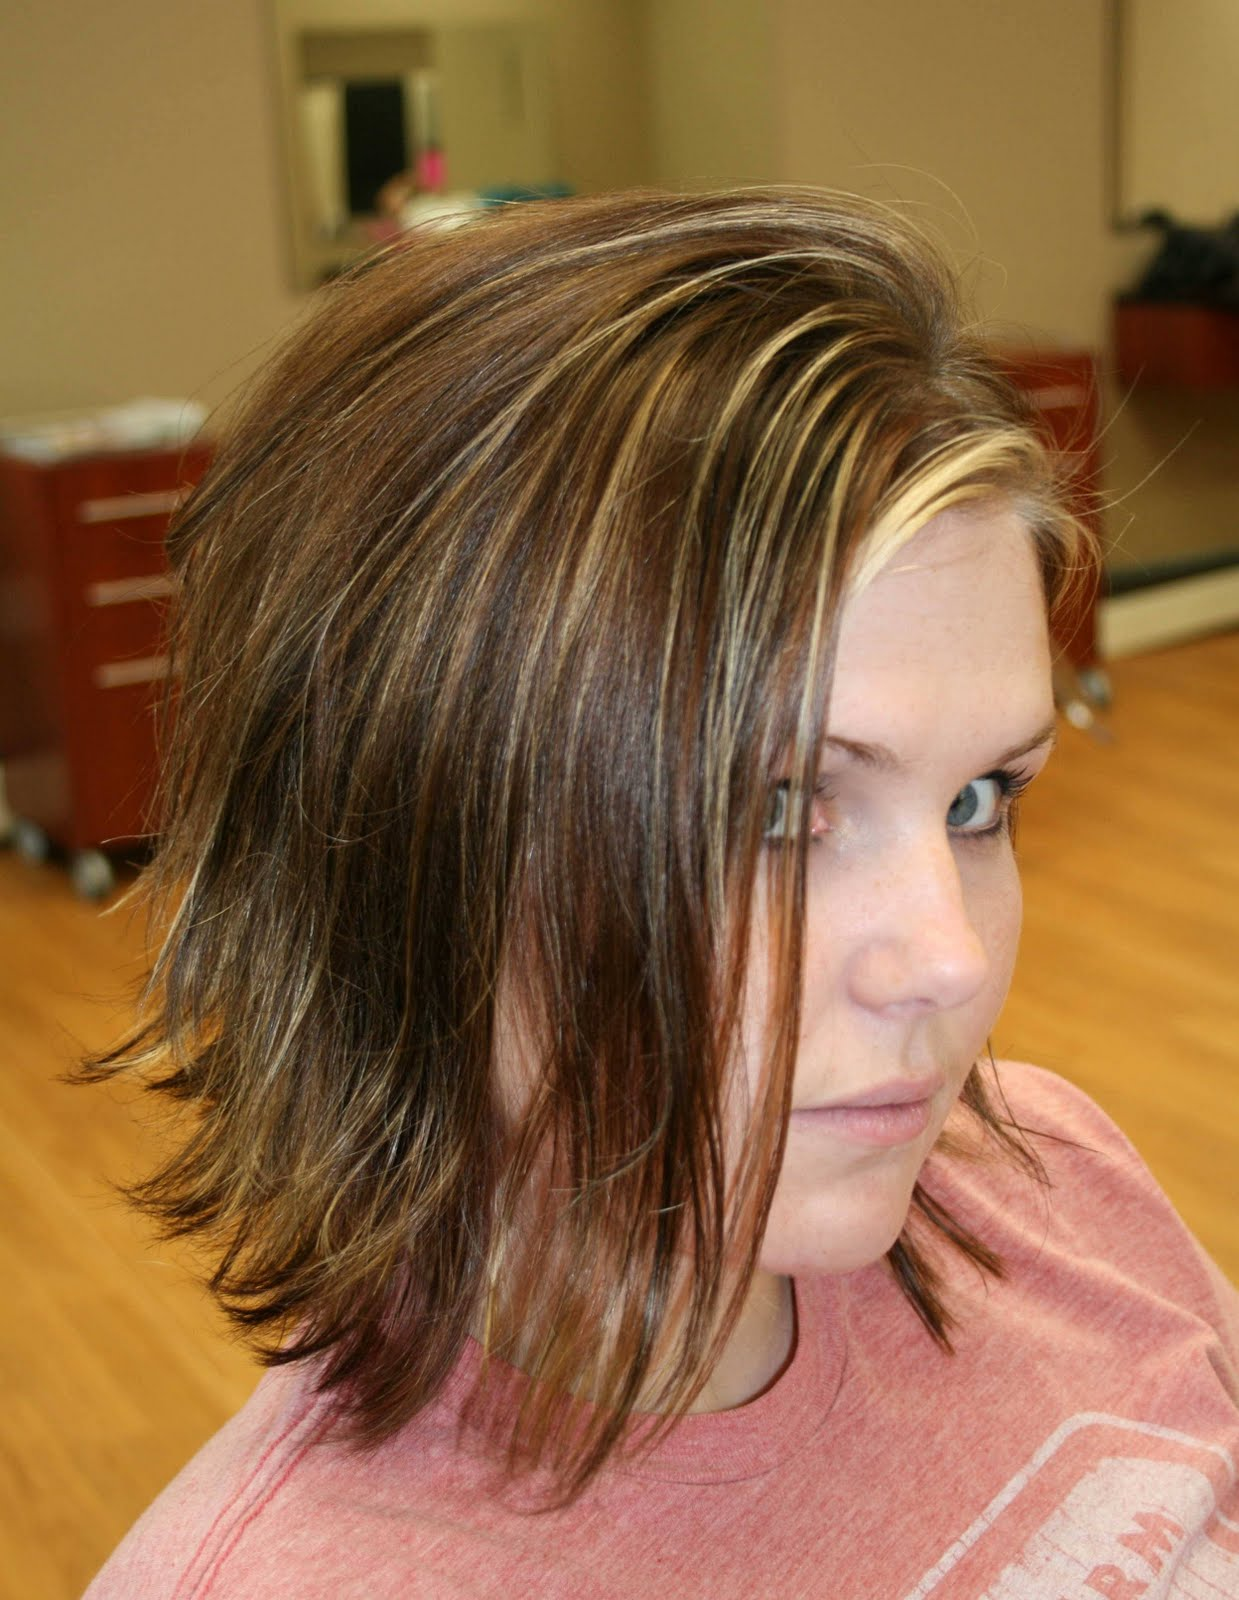 ... and Hairstyles: Trendy Hairstyles with Modern and Chic Bob Haircuts